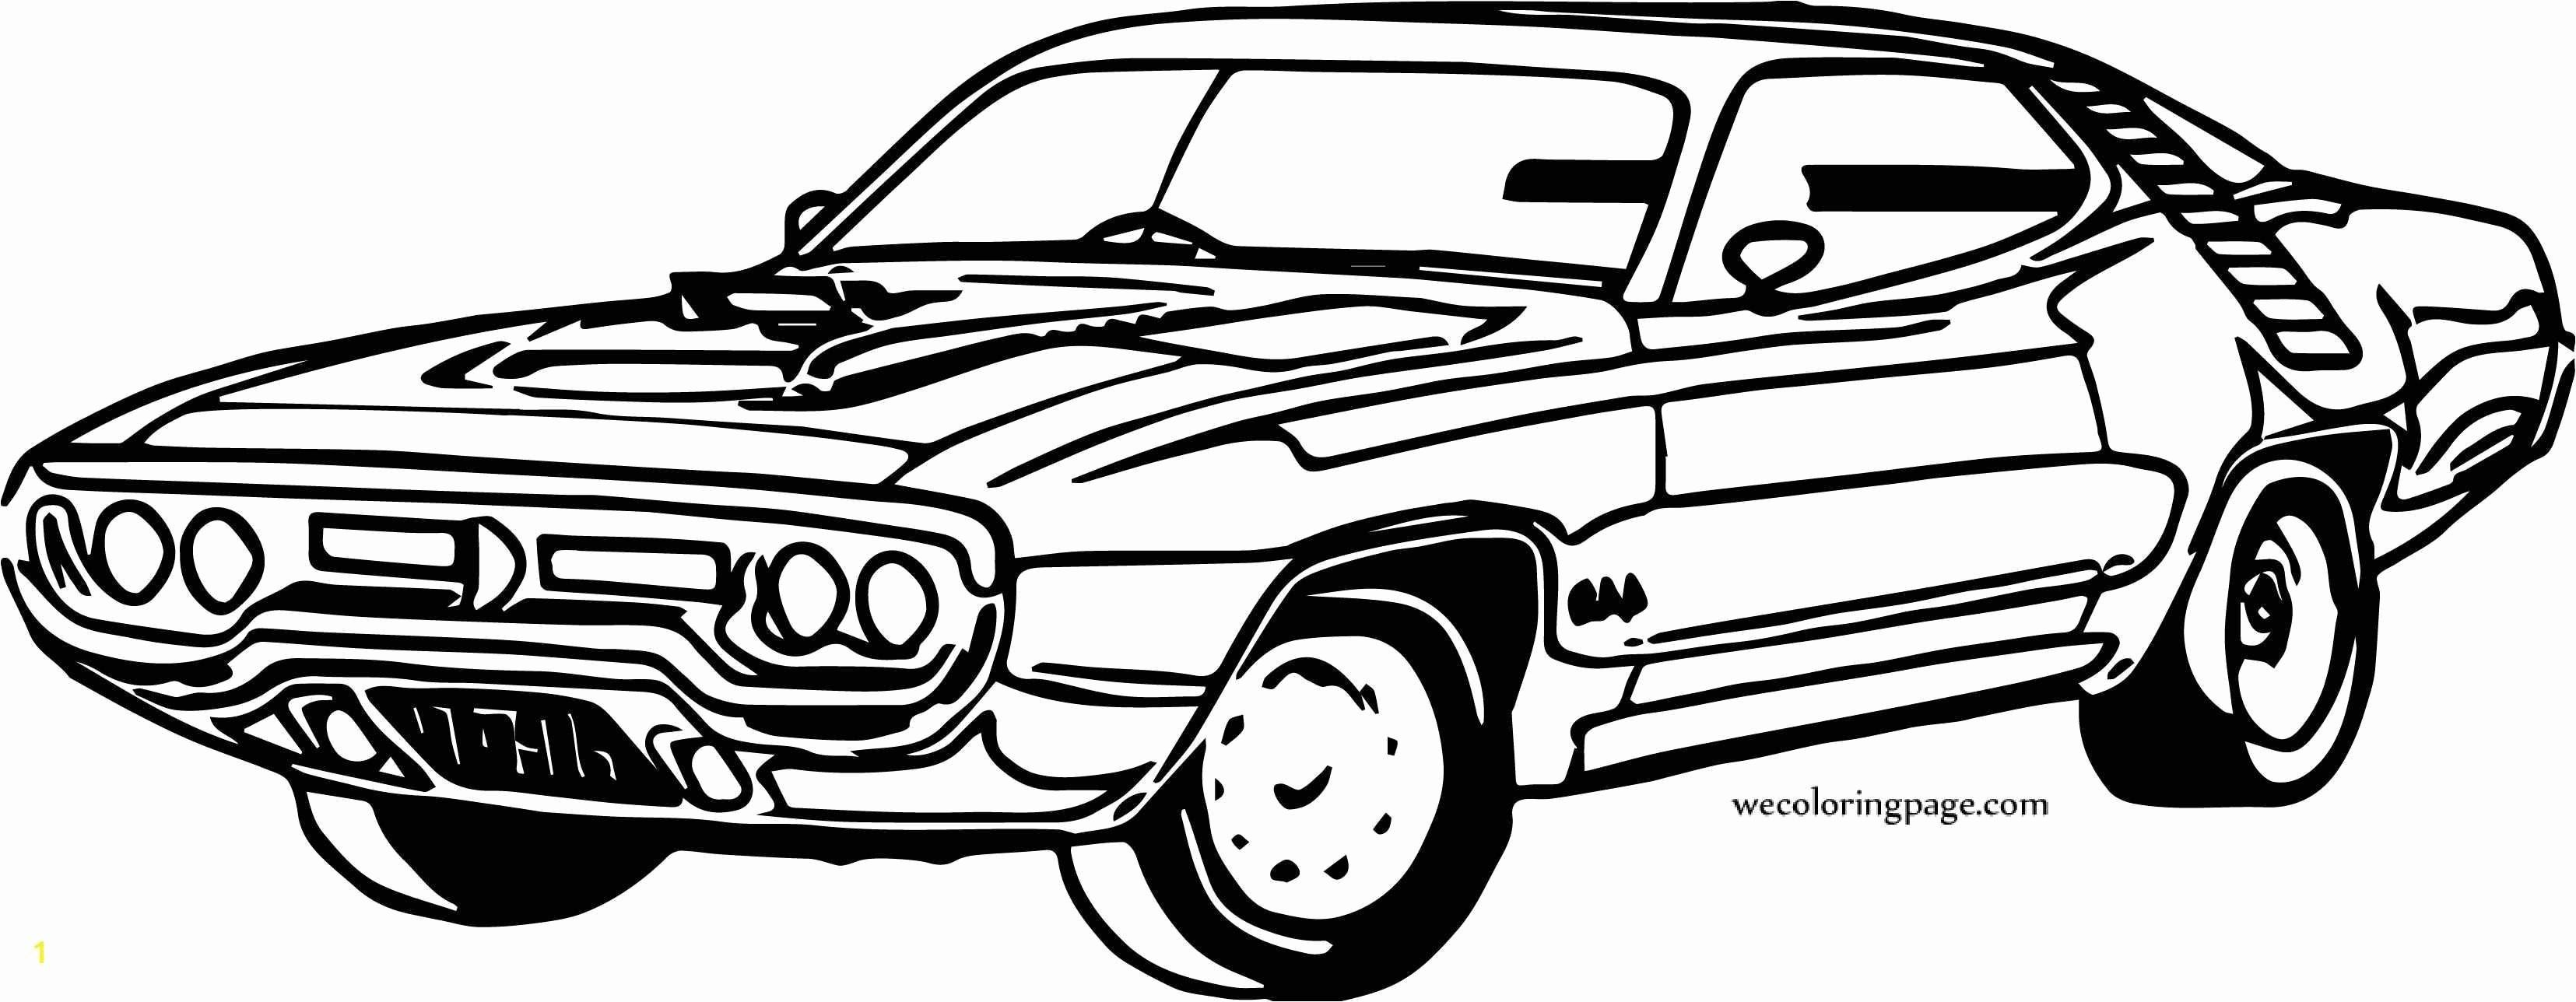 Formula One Racing Car Was Drove Coloring Page Race Car Coloring